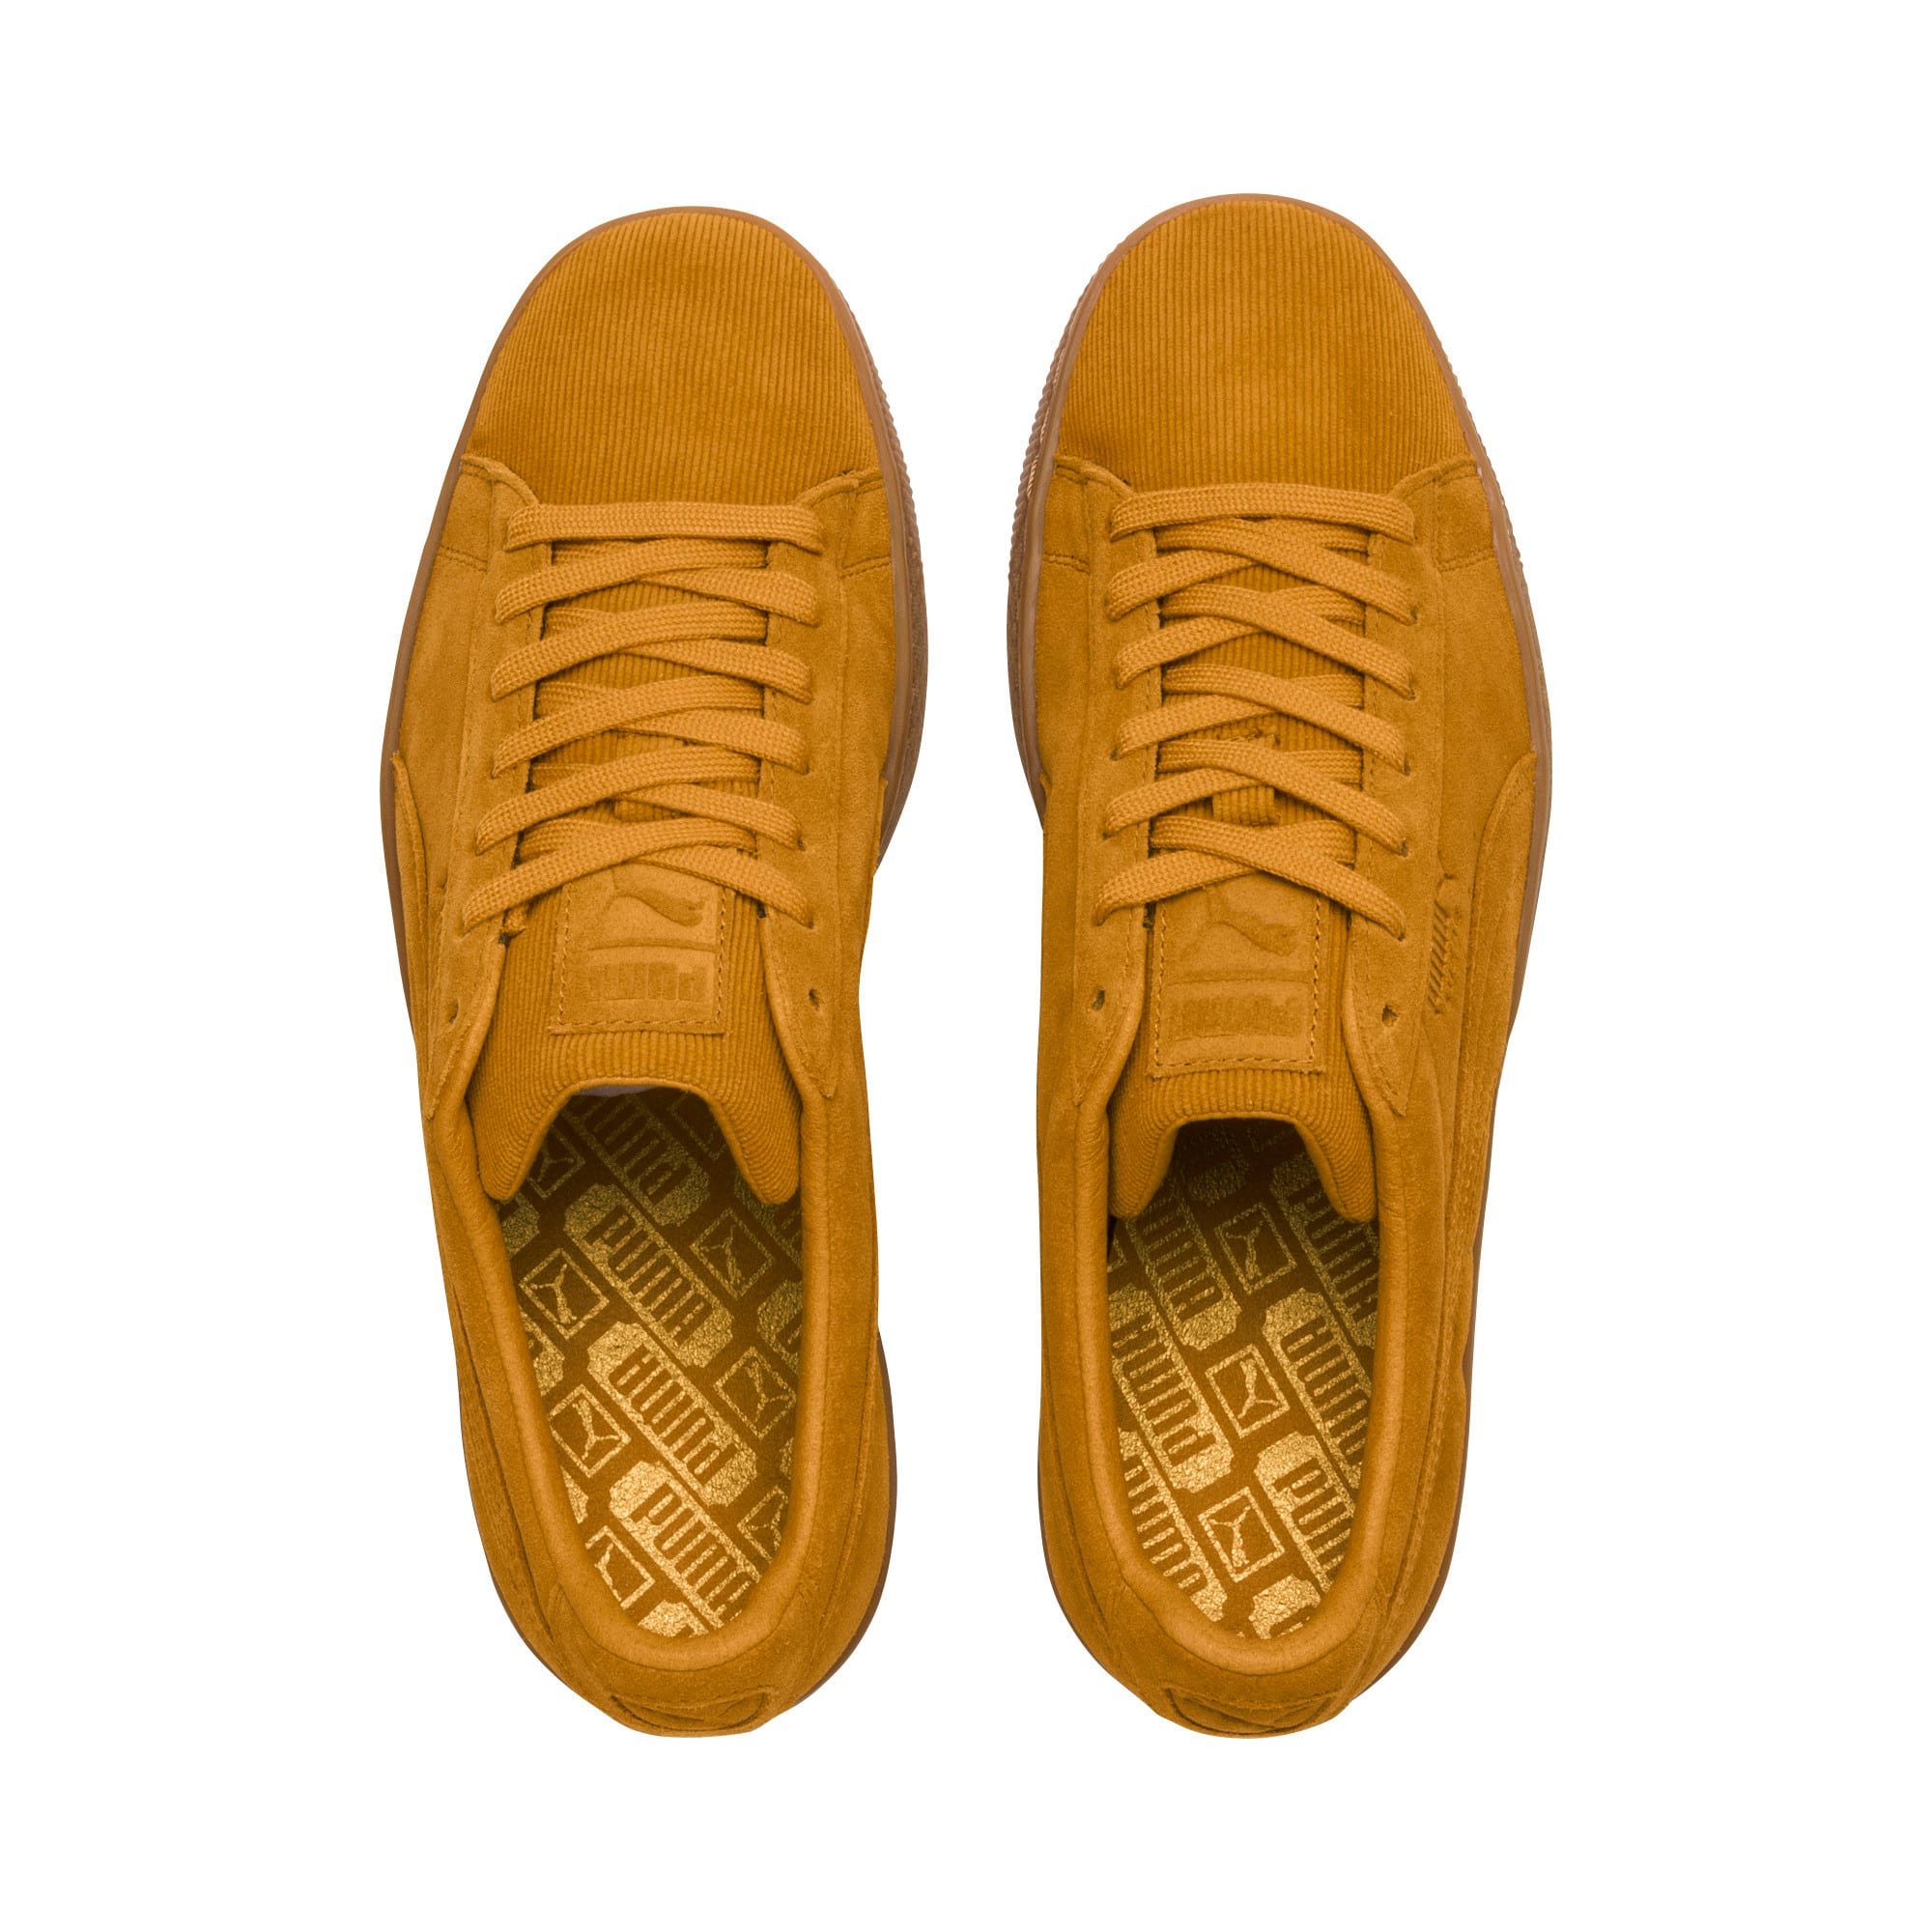 Thumbnail 6 of Suede Classic Pincord Trainers, Buckthorn Brwn-Buckthorn Brw, medium-IND